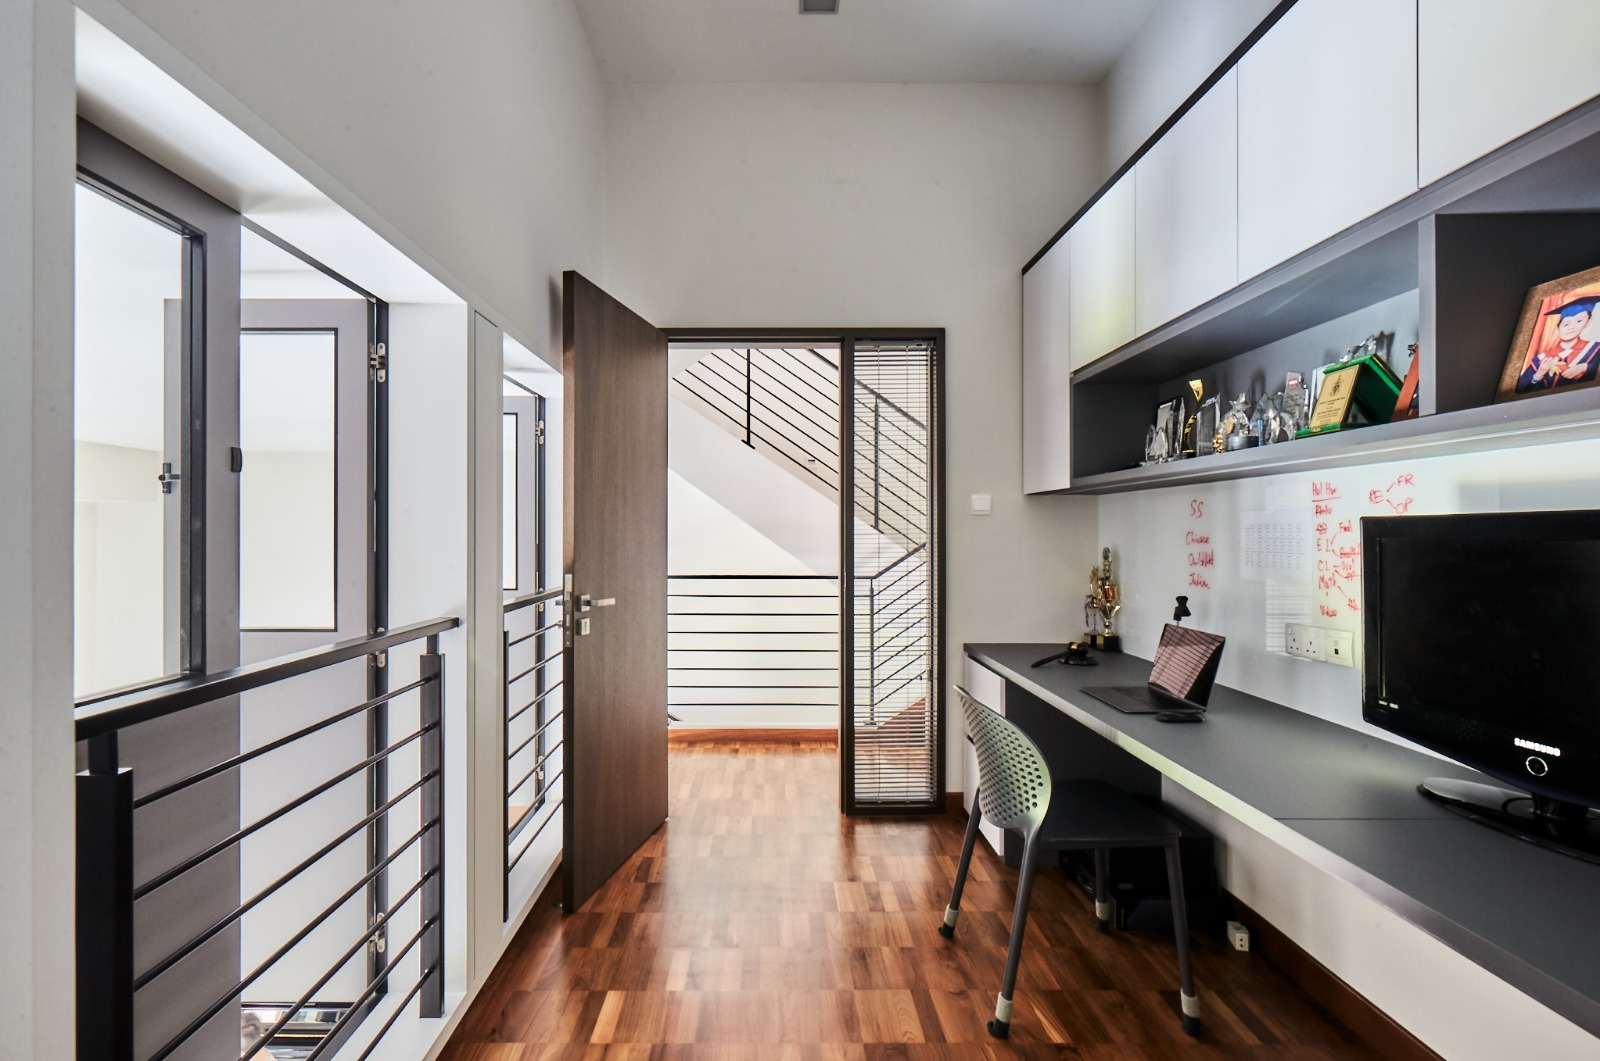 squarerooms richfield integrated home landed house renovation makeover modern contemporary neutral monochromatic design office study room desk wood floors stairs bungalow